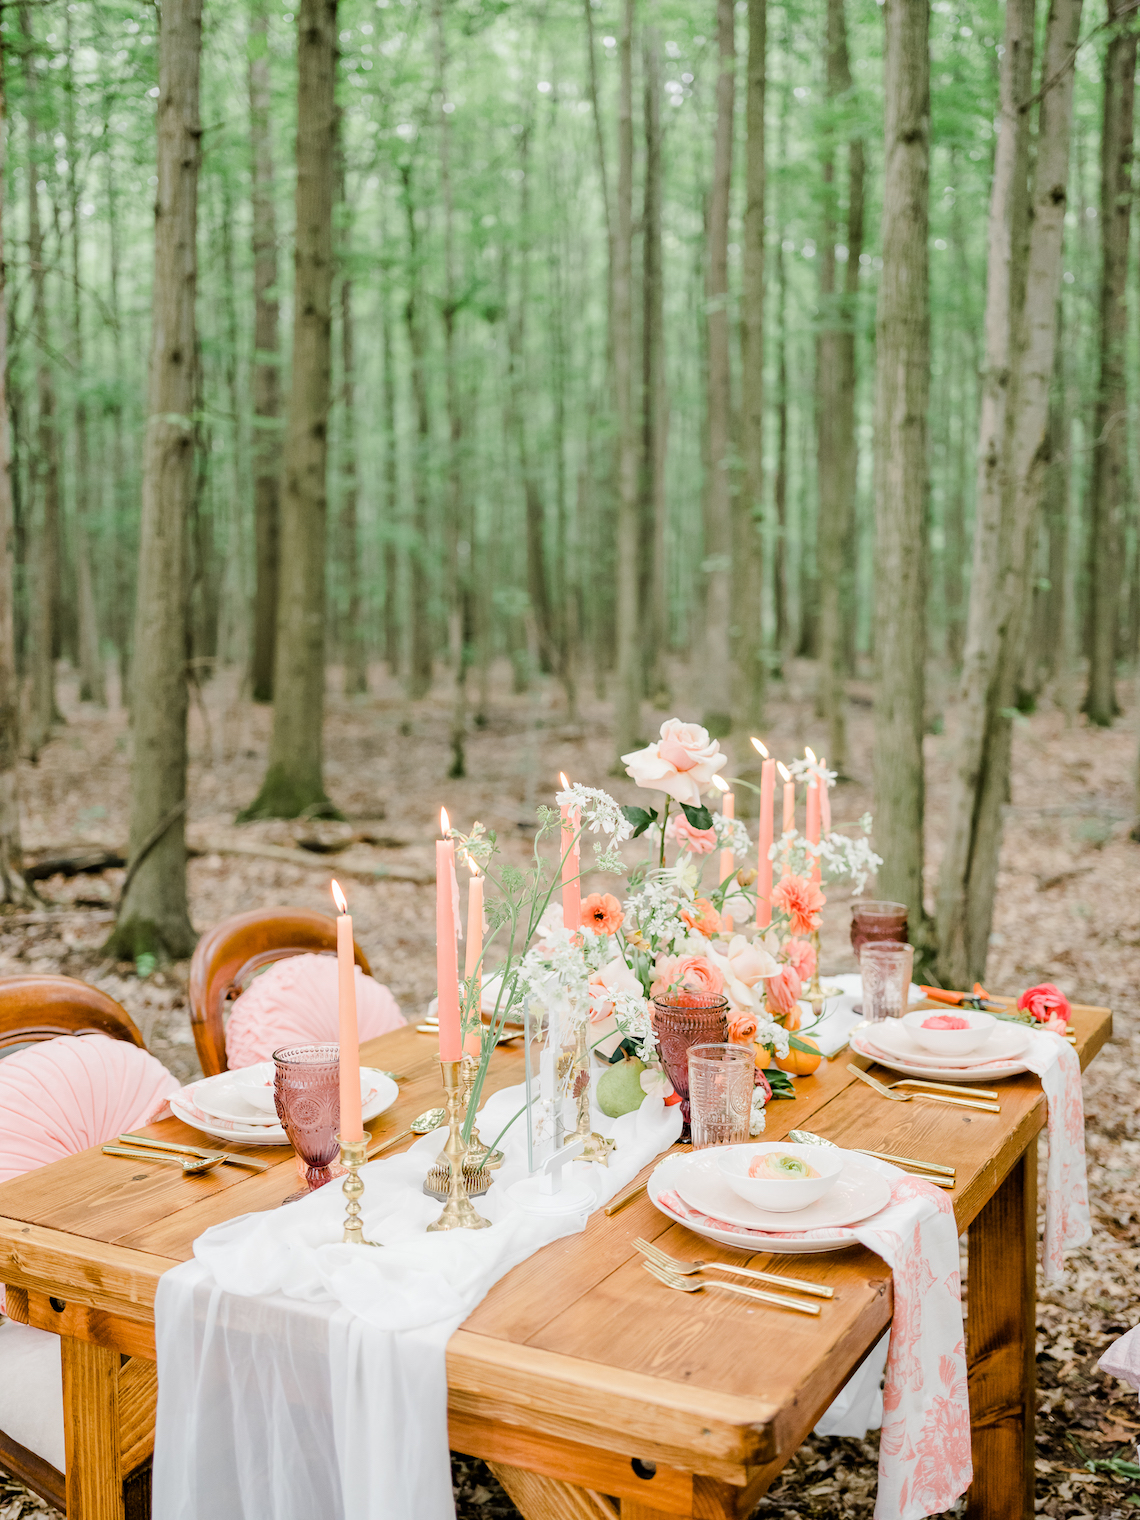 Whimsical Pantone Living Coral Colorful Meadow Wedding Inspiration – Kira Nicole Photography 15